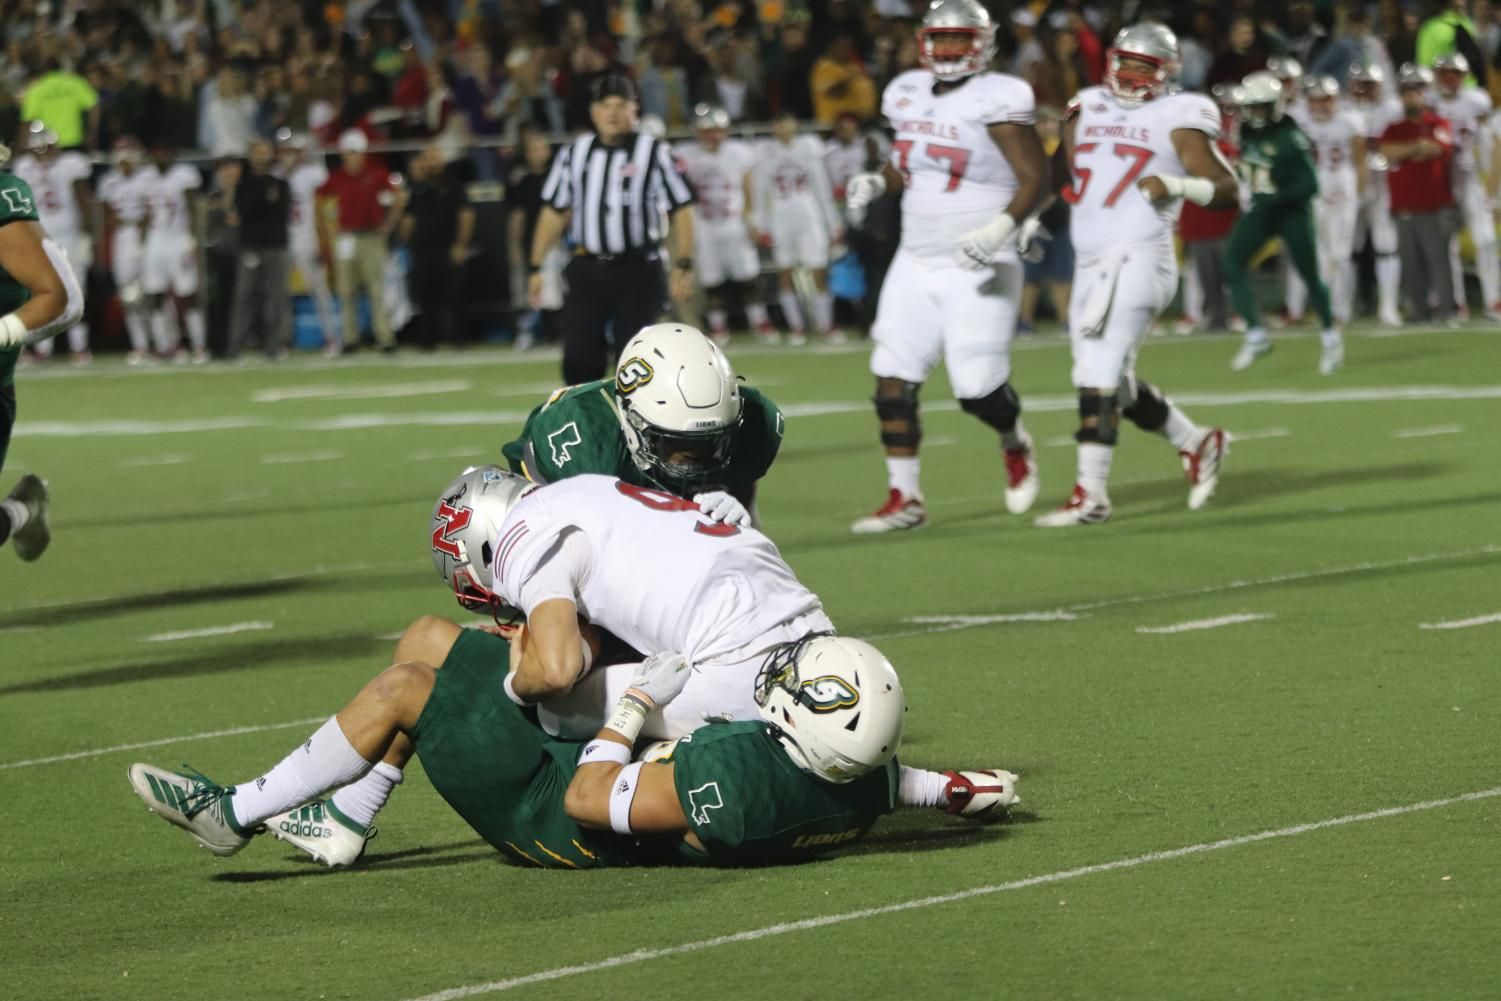 Linebackers Alexis Ramos and Joshua Carr sack Nicholls State quarterback Chase Fourcade. Ramos was ejected in the third quarter due to a targeting penalty.